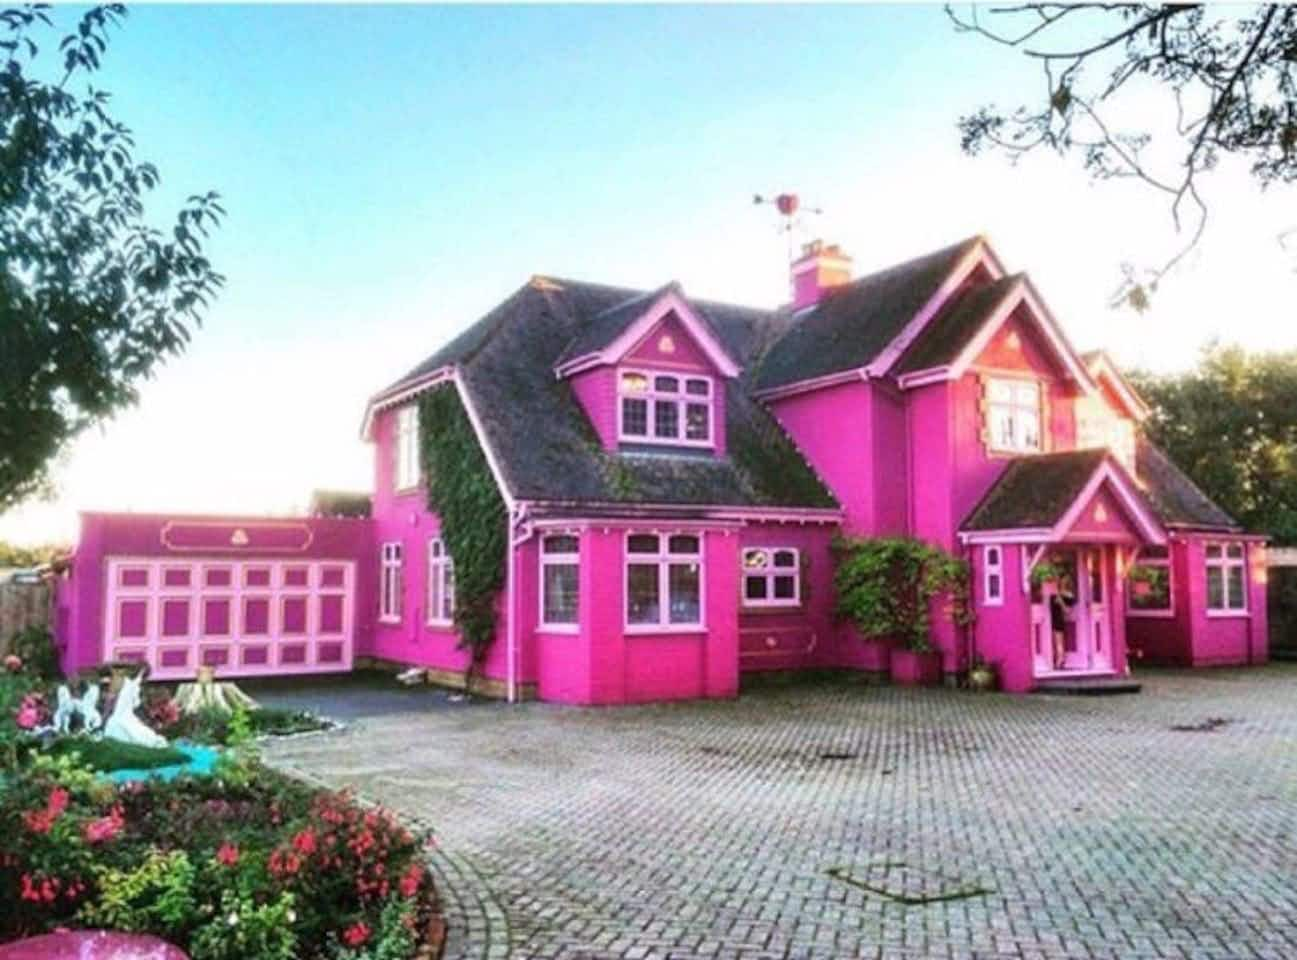 Visitors will be tickled pink by this fuschia-hued English Airbnb complete with garden unicorns